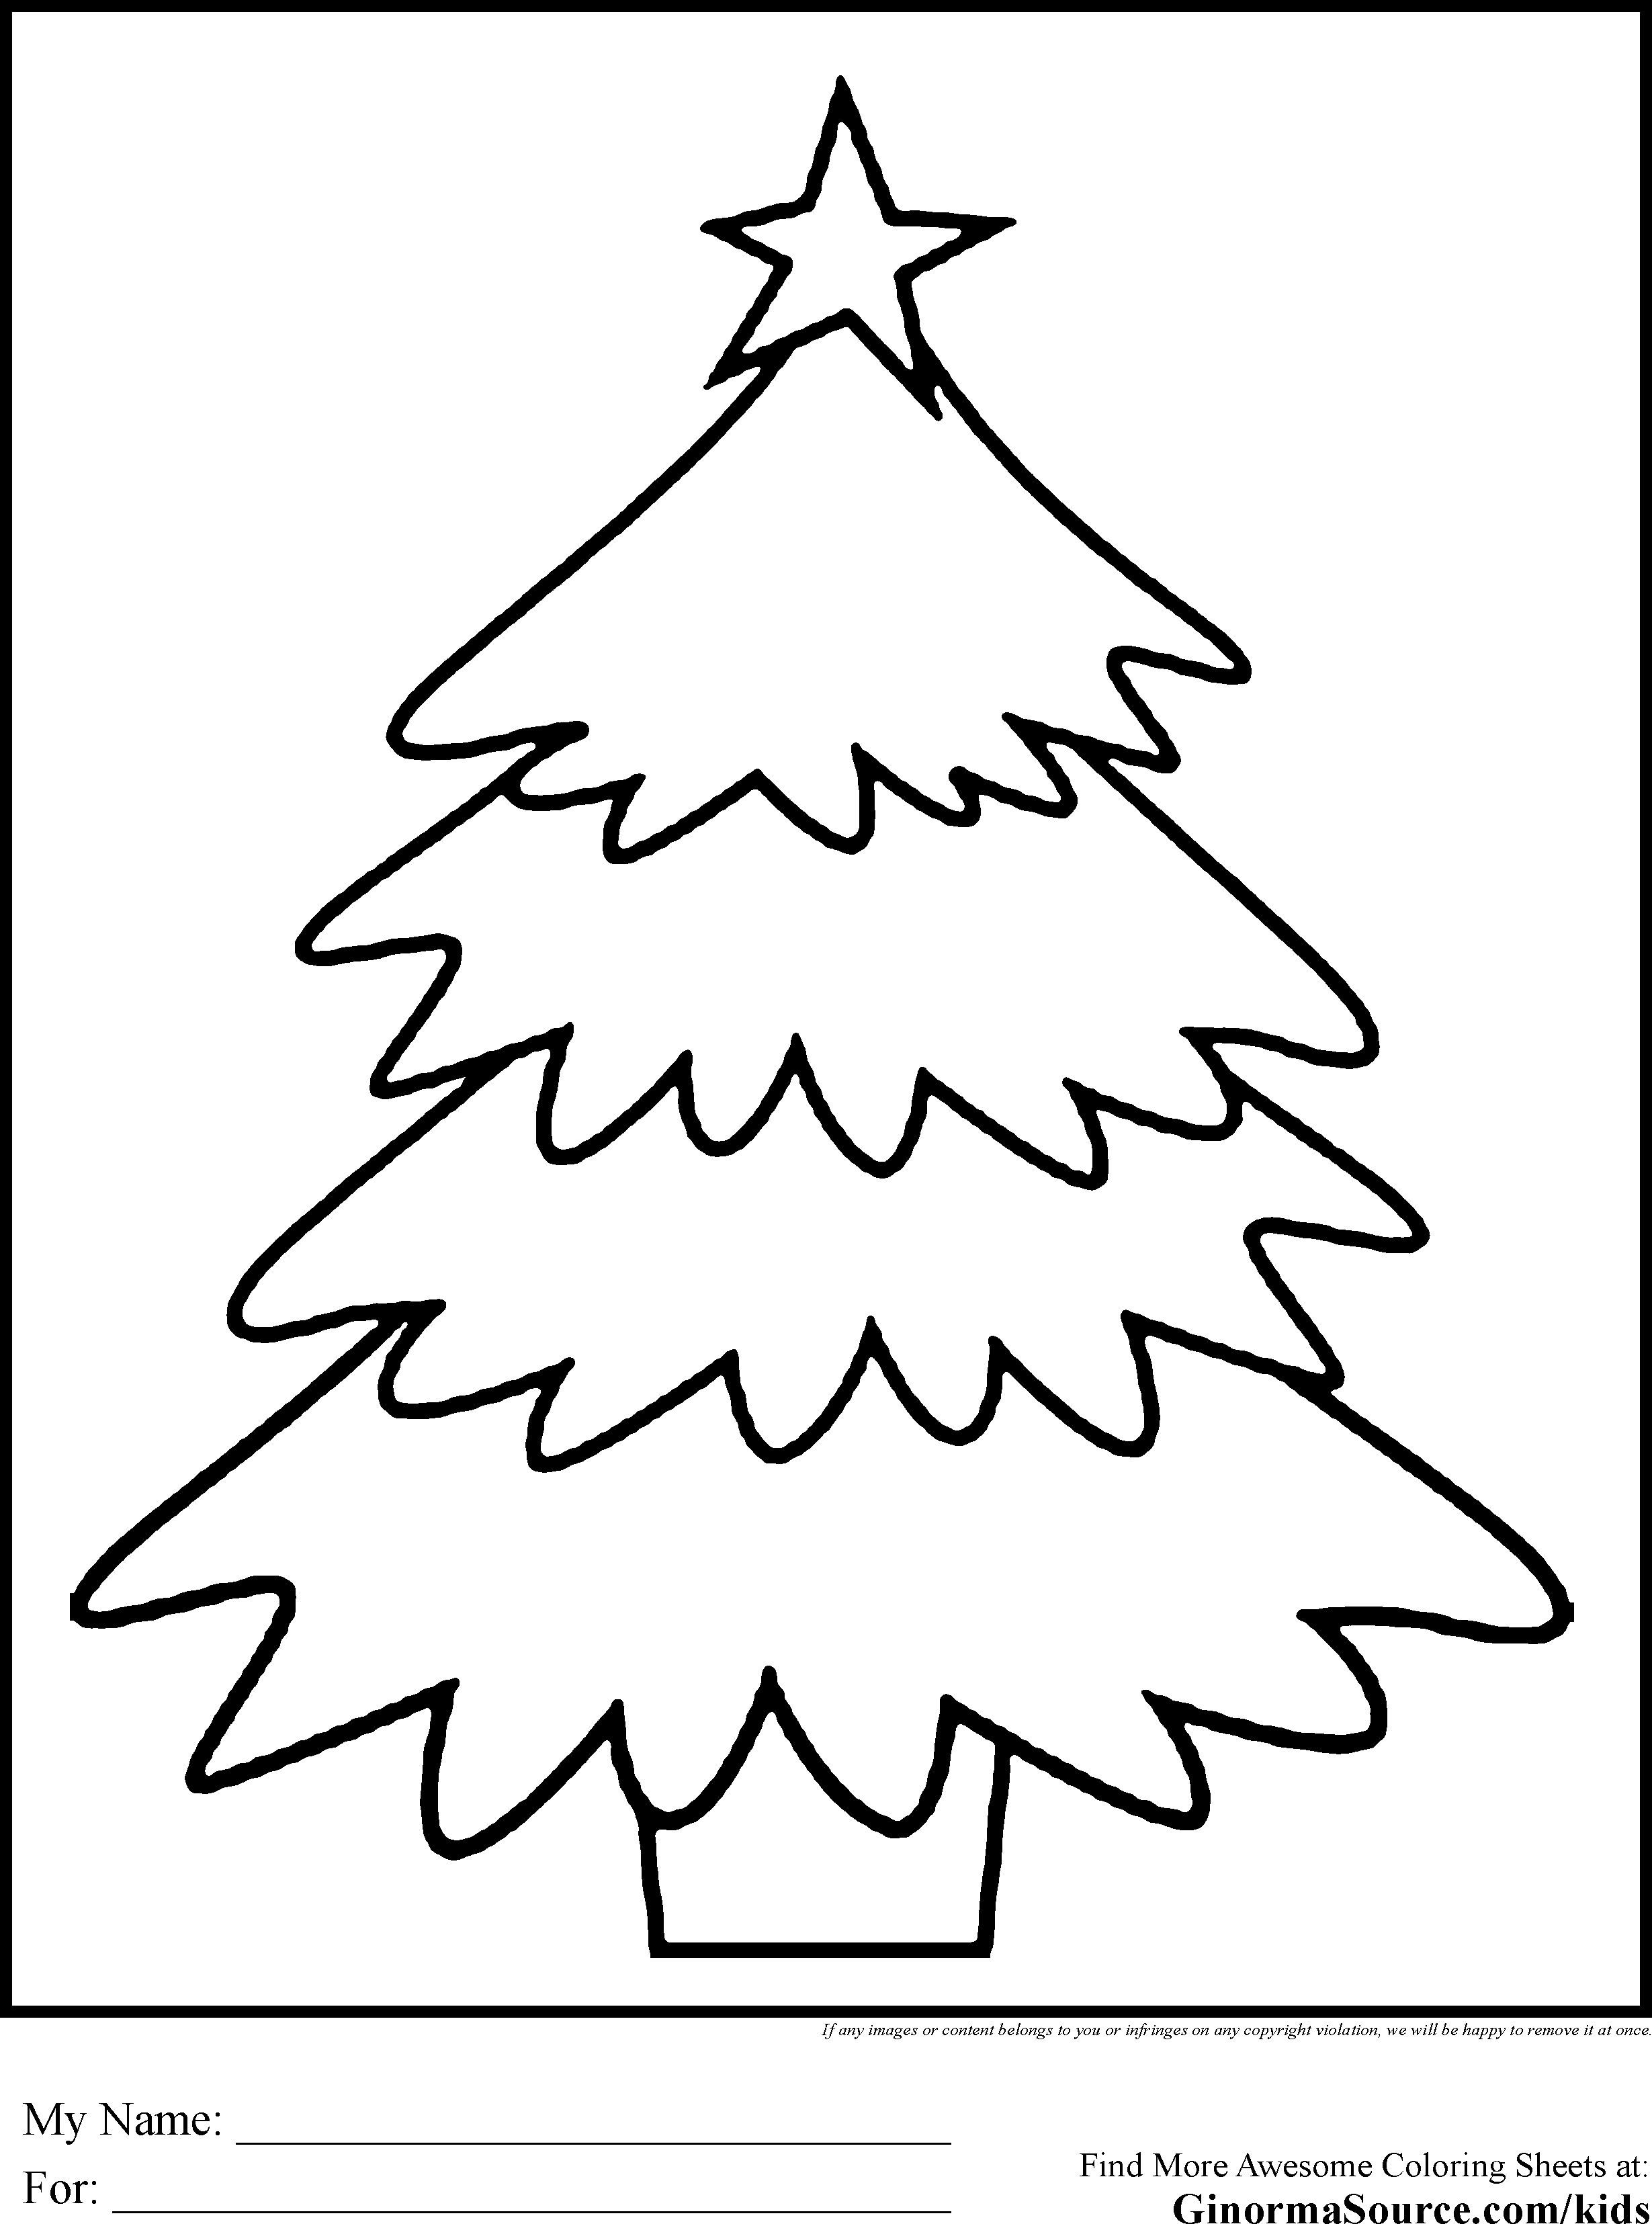 Pine Tree Coloring Pages Gallery Christmas Tree Coloring Page Printable Christmas Coloring Pages Christmas Coloring Sheets